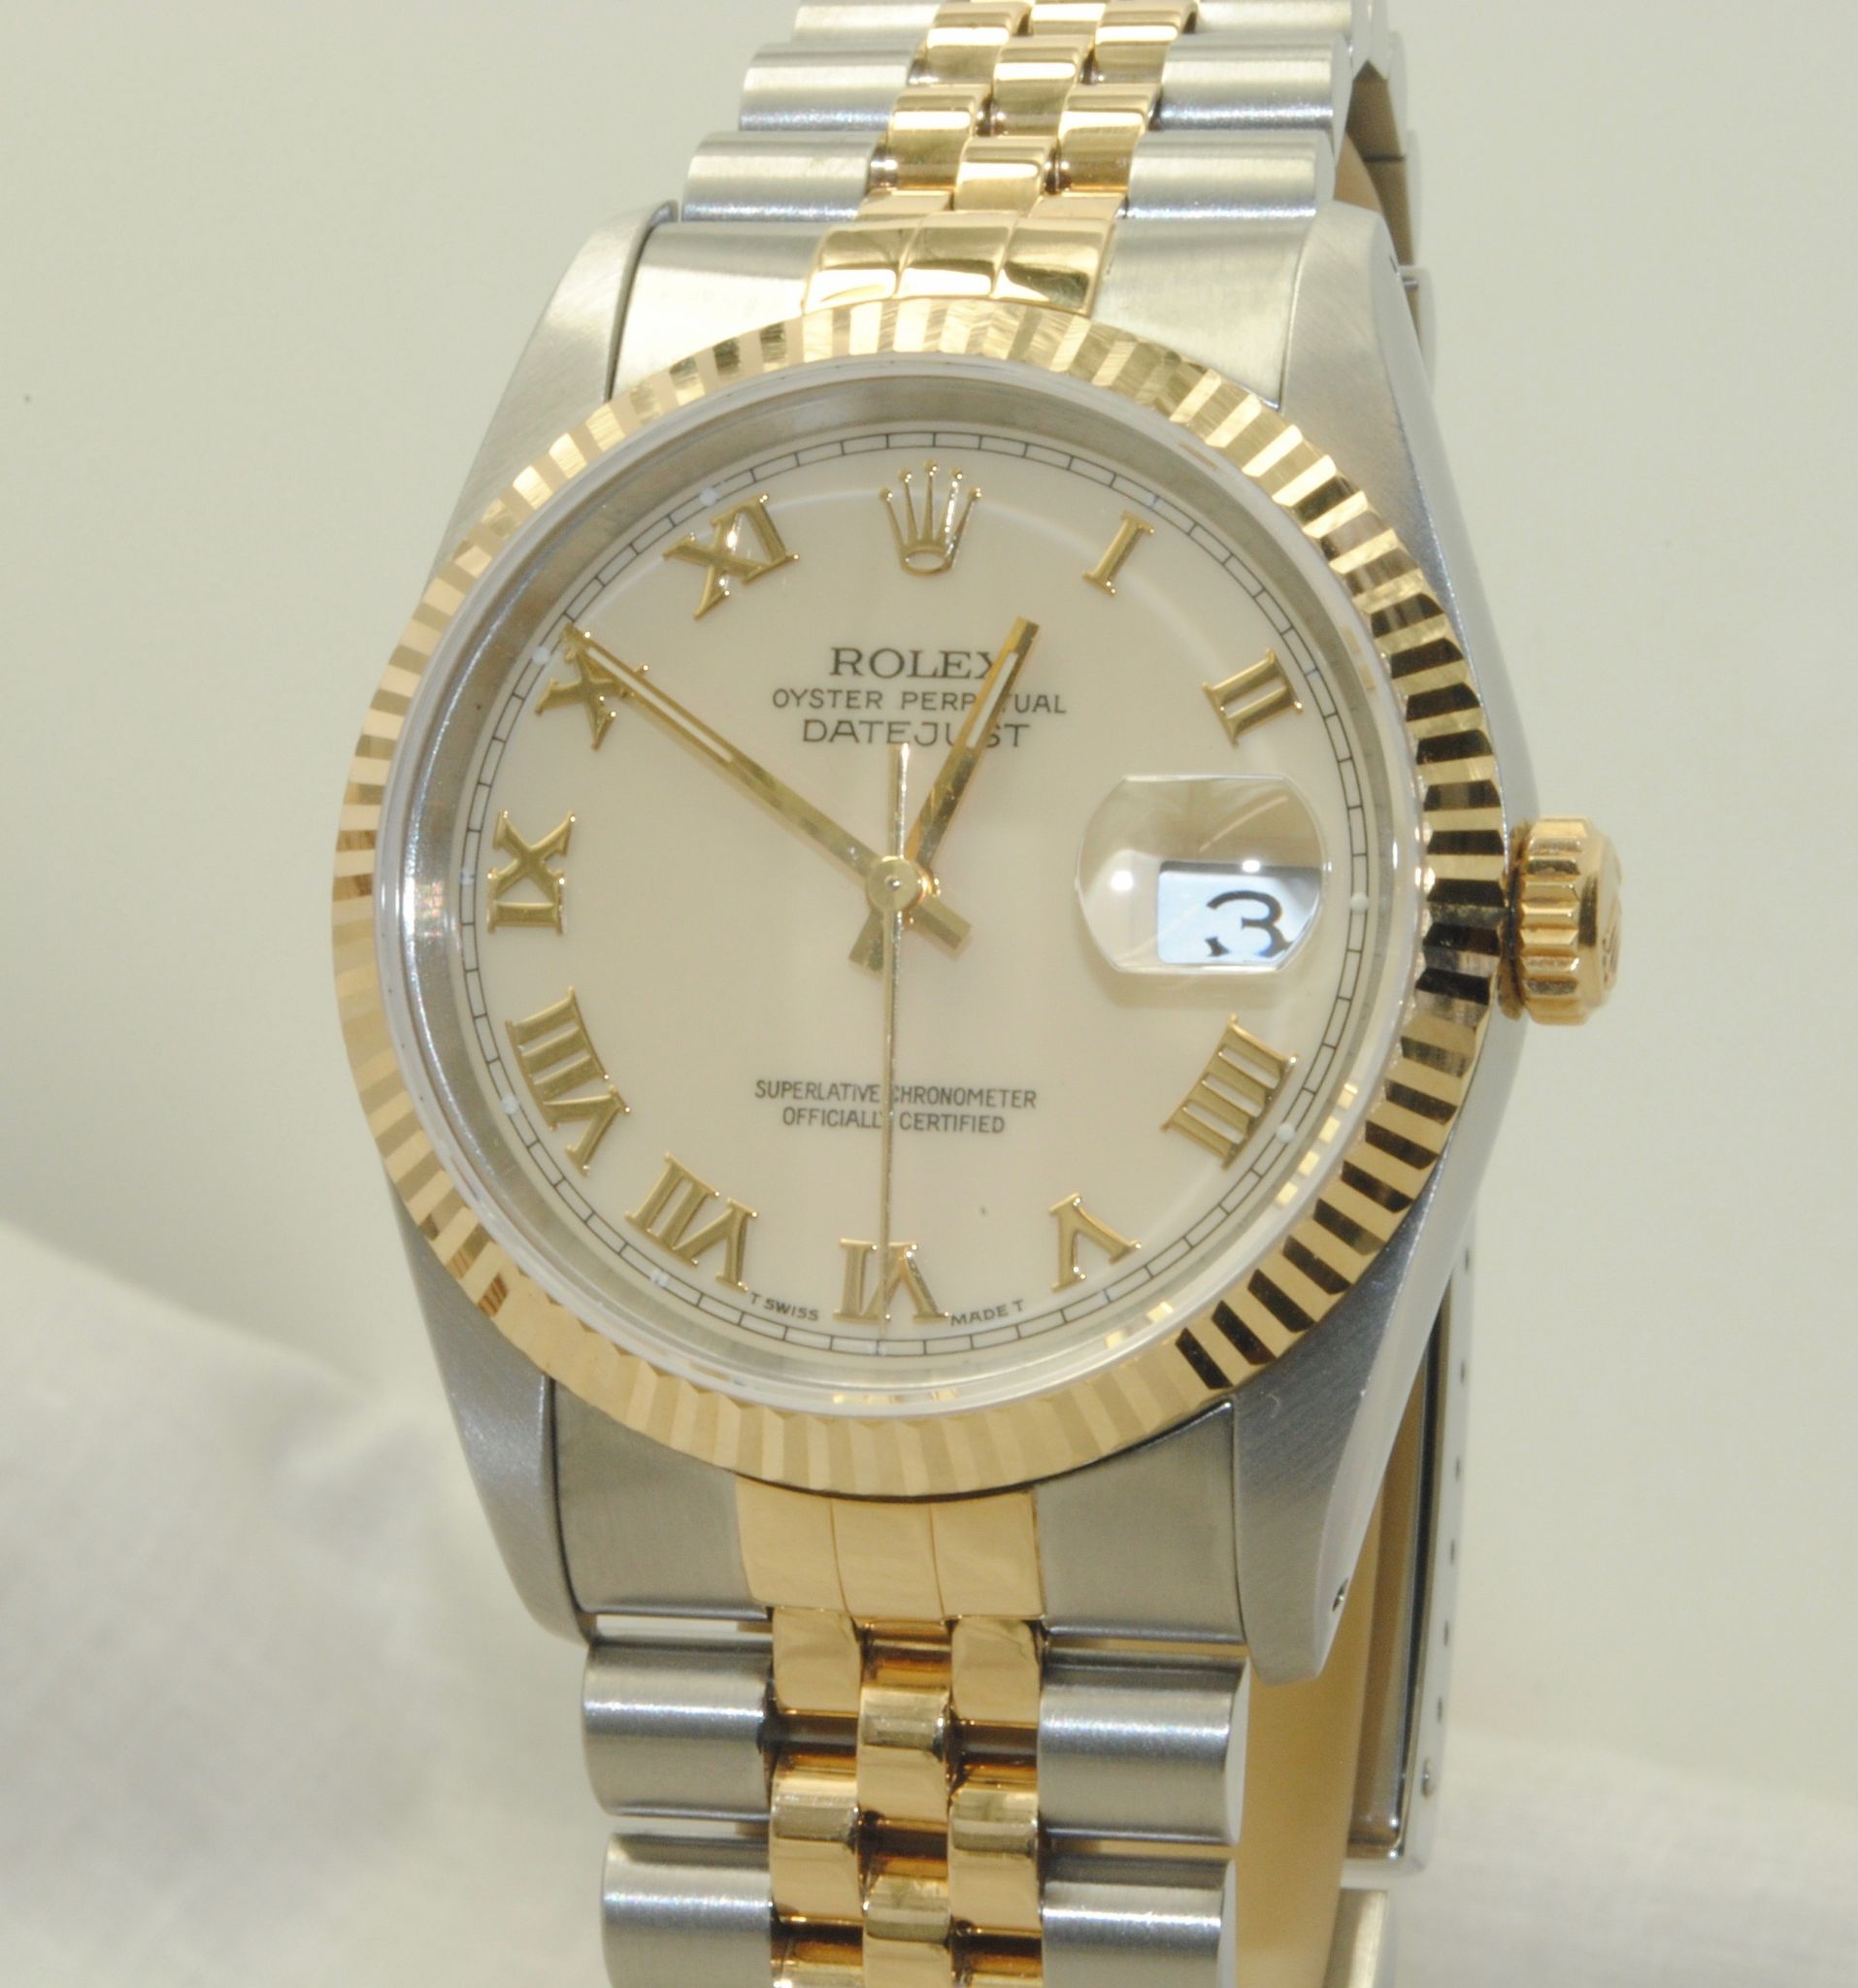 21e858919ee rolex-oyster-perpetual-datejust-36mm-stainless-steel-18ct-gold-16233 -watch-1637-p.jpg